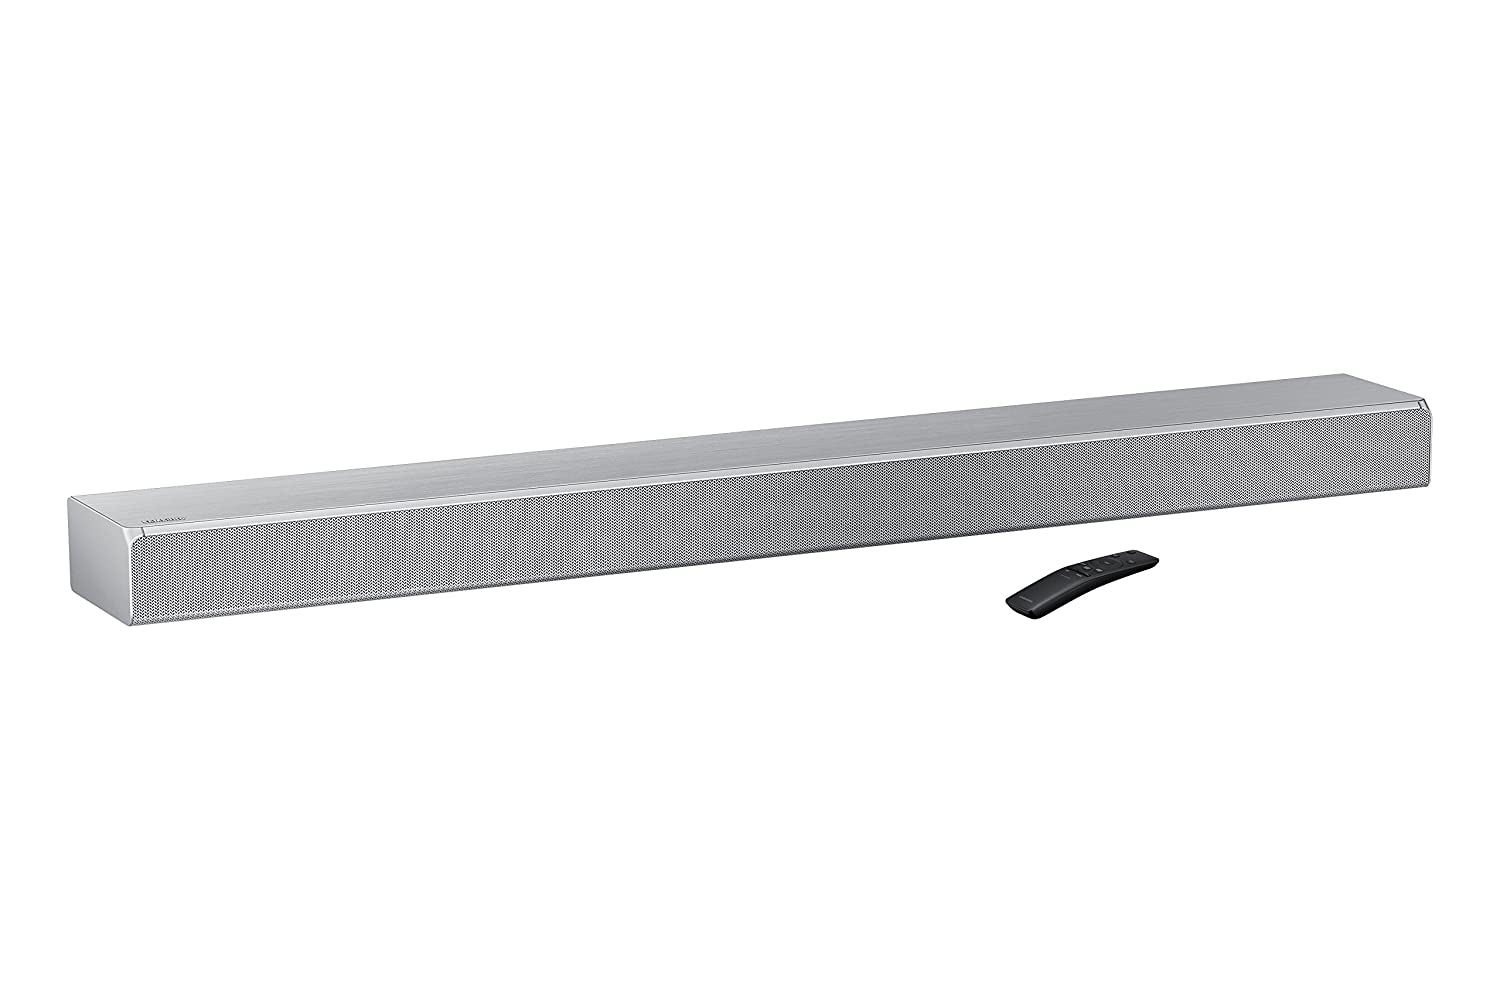 Samsung HW-MS651 - Barra de Sonido Inalámbrica Sound + MS651, Color Plata